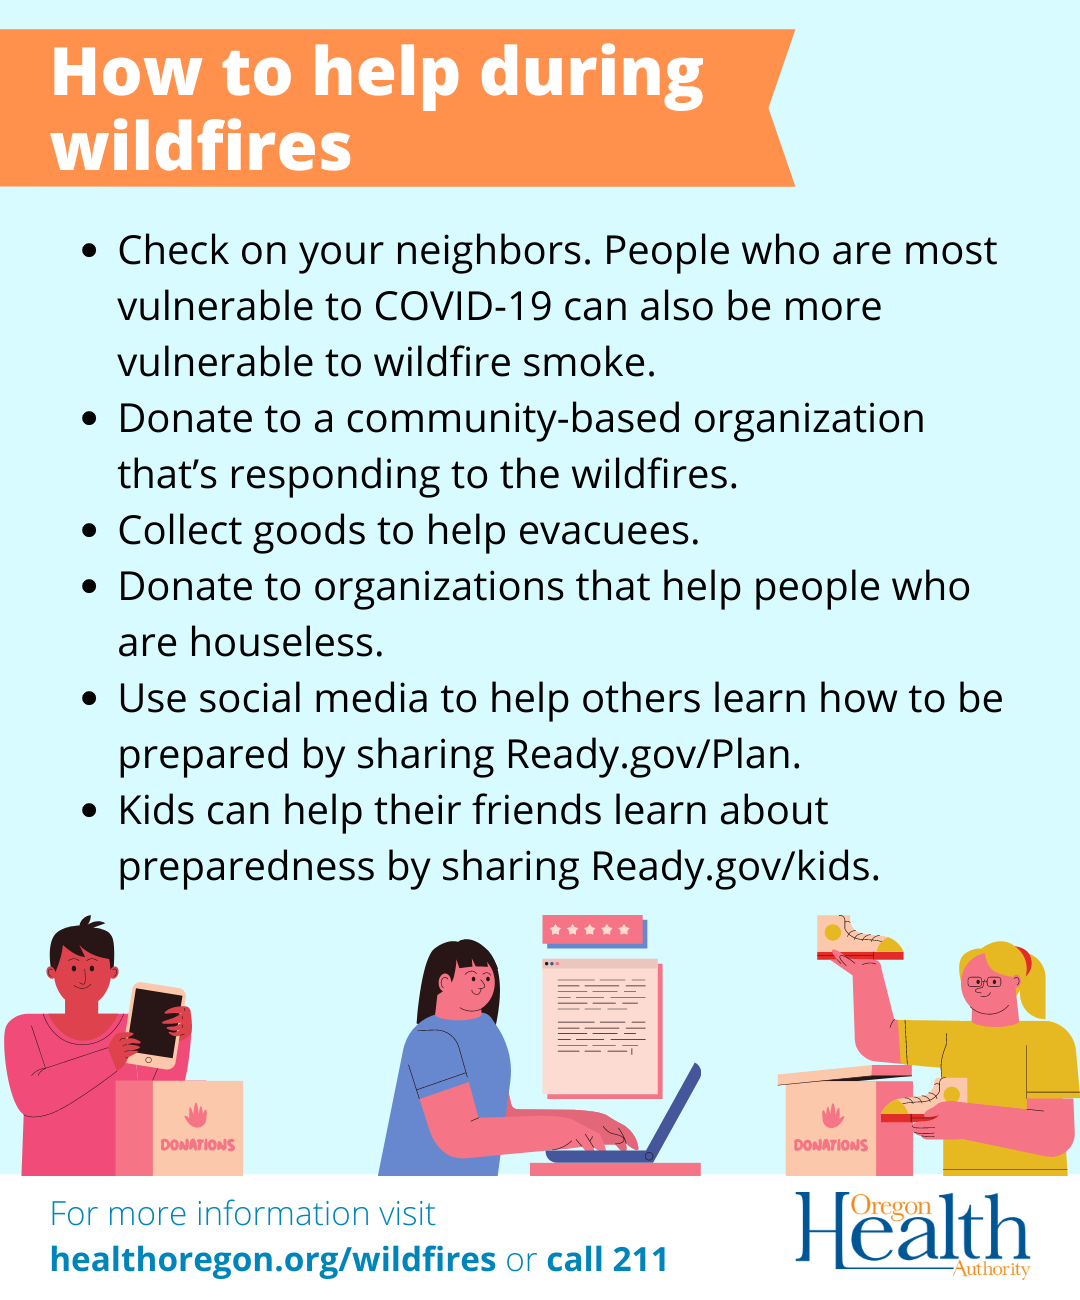 Ways to help during wildfires: Check on neighbors Donate to organizations responding to fires or helping people who are houseless